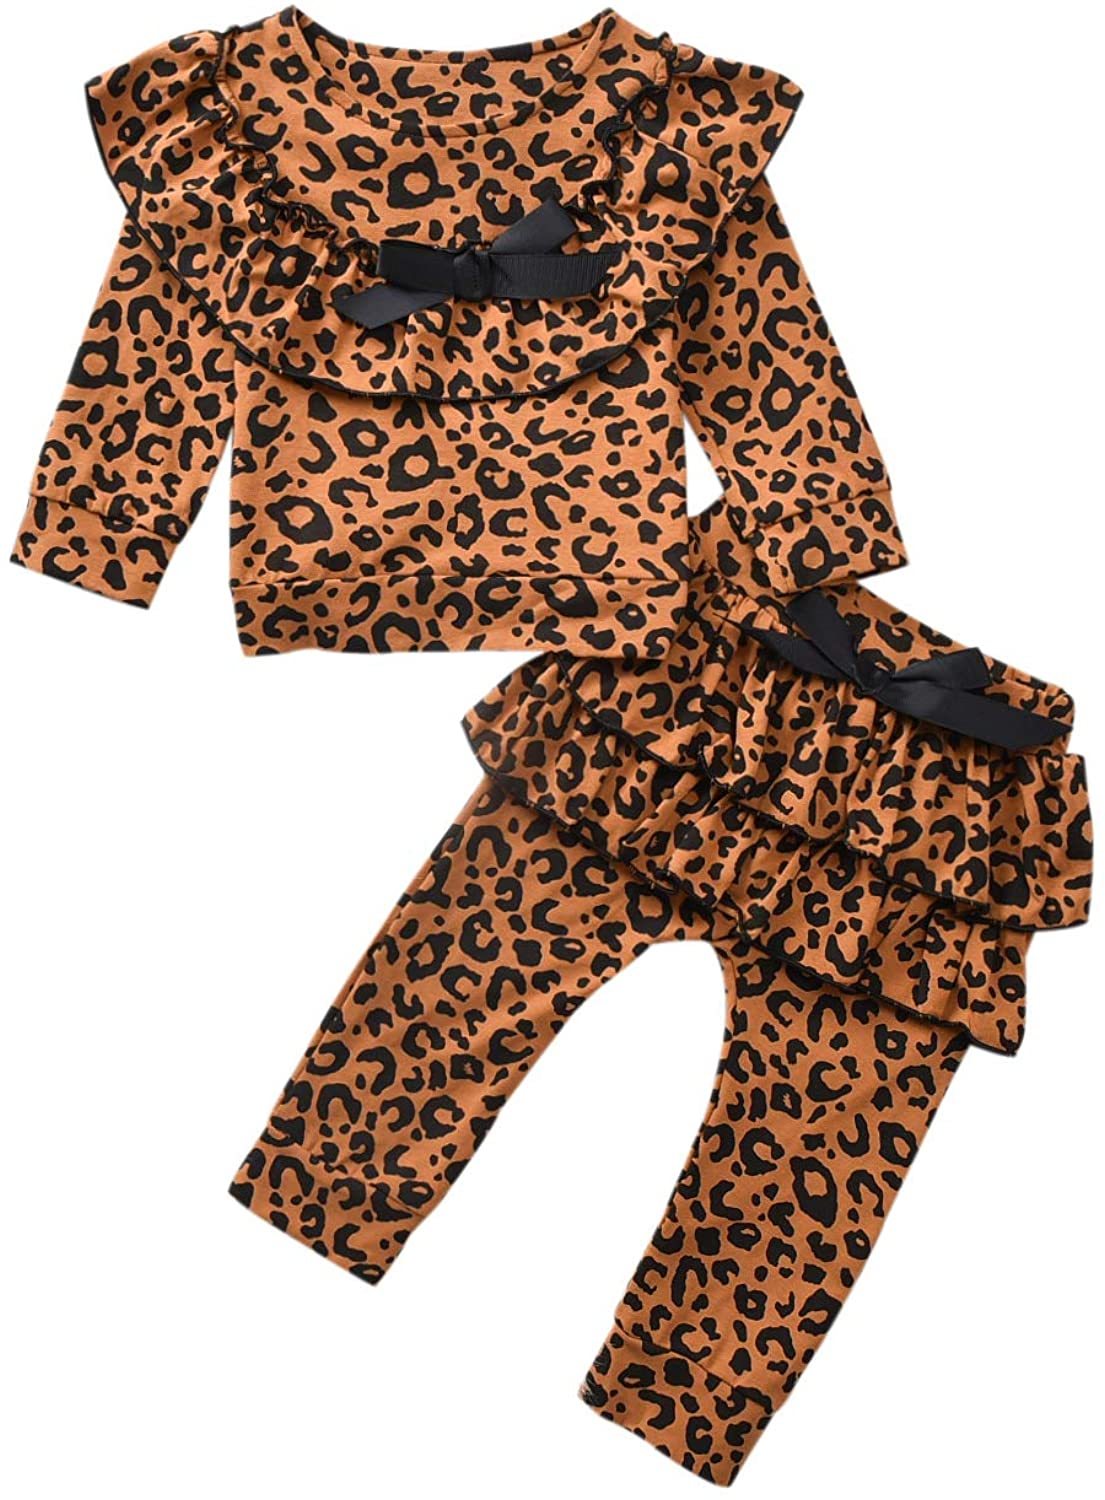 Toddler Baby Girl Outfit Leopard Ruffle Long Sleeve Clothes Fall Winter Sets